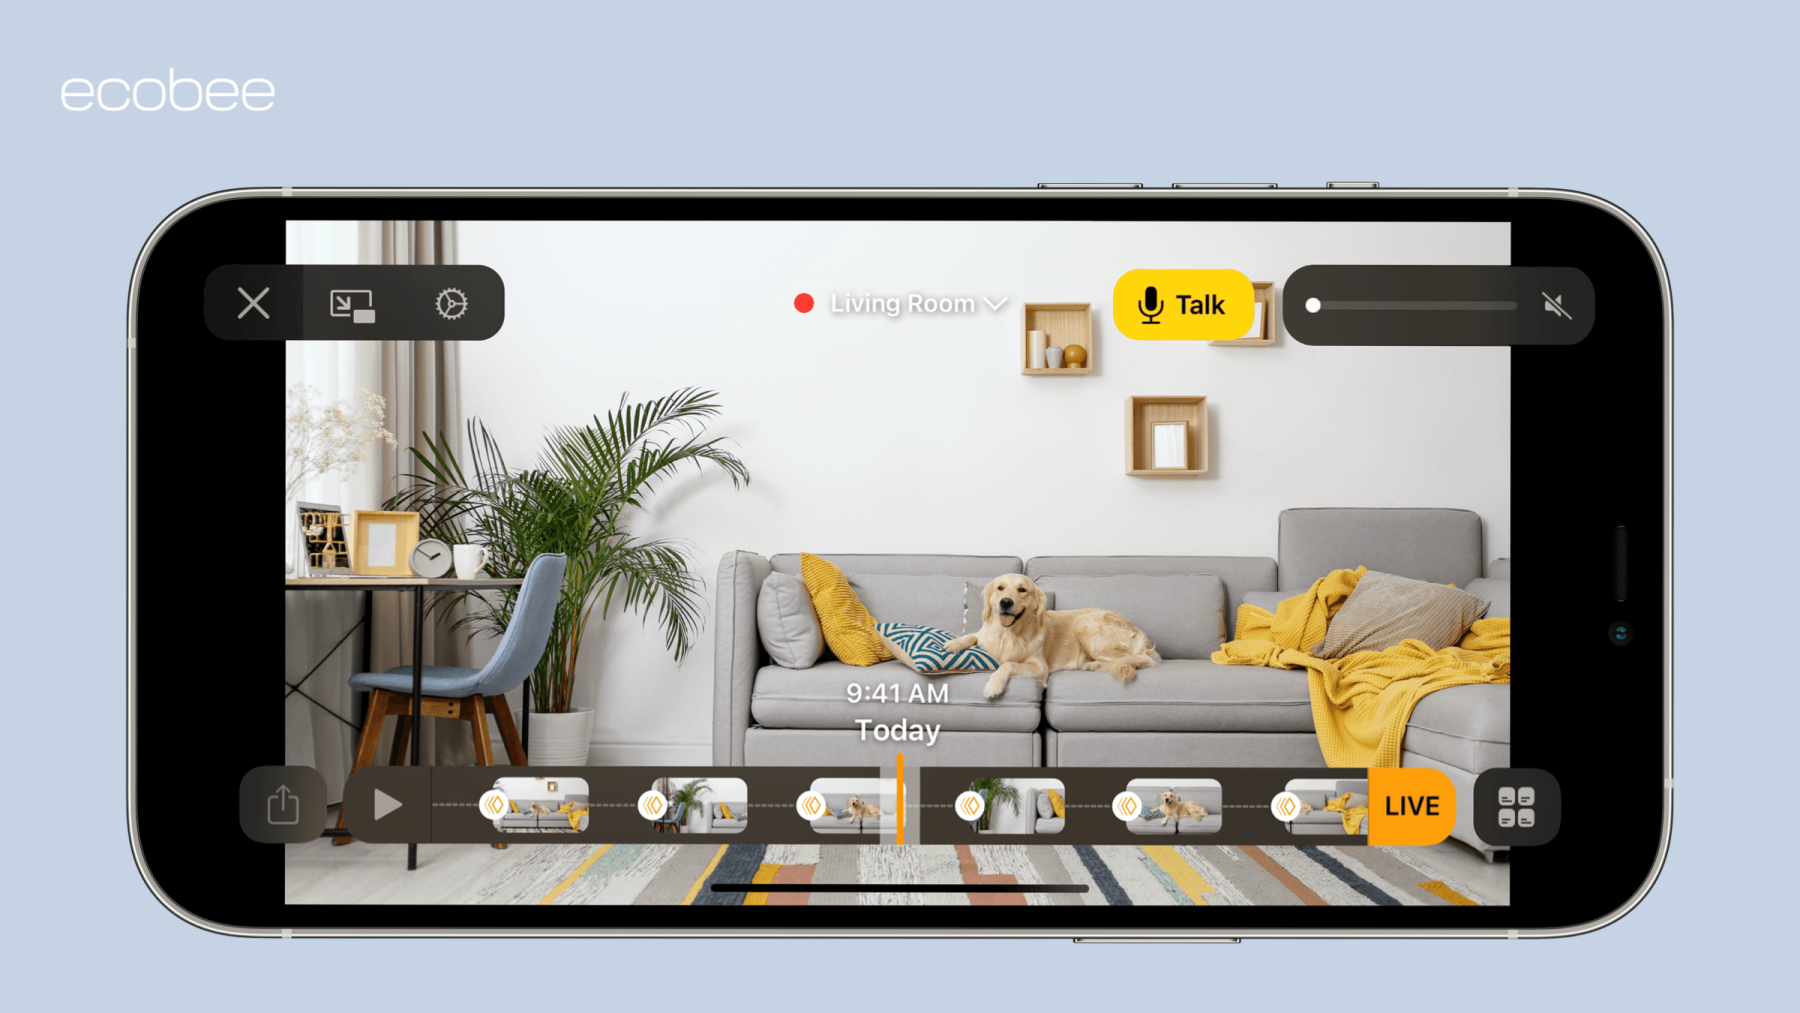 iPhone screen with dog for HomeKit Secure Video